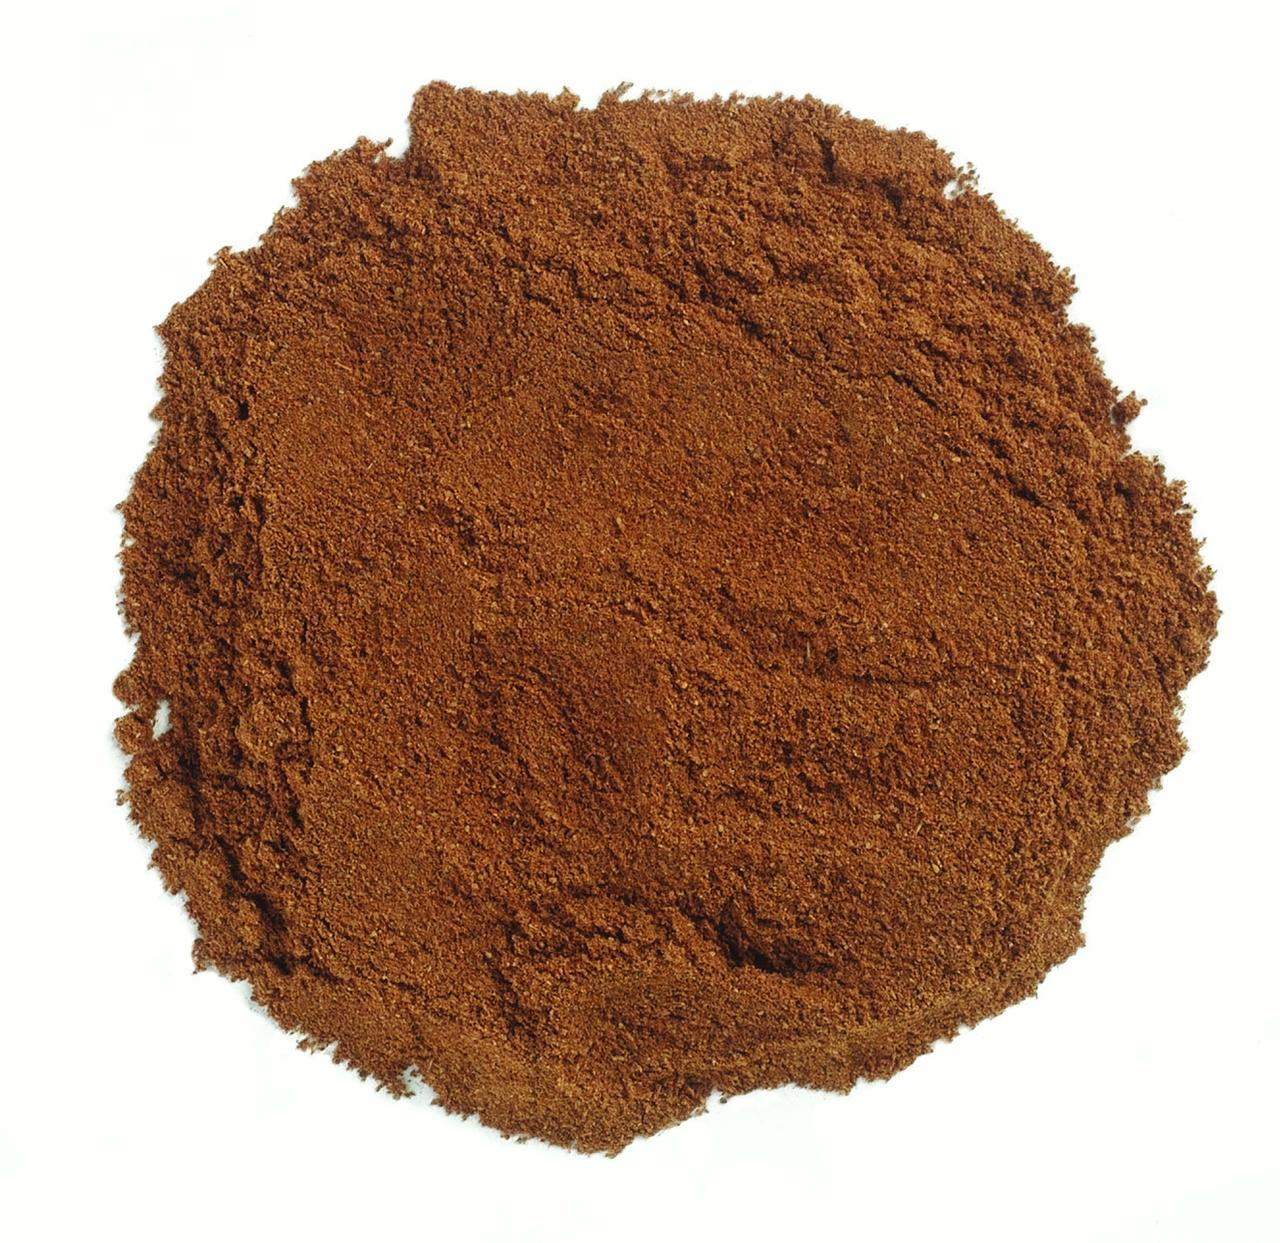 Frontier Co-op Vietnamese Premium Cinnamon Ground Certified Organic bulk 16 oz.